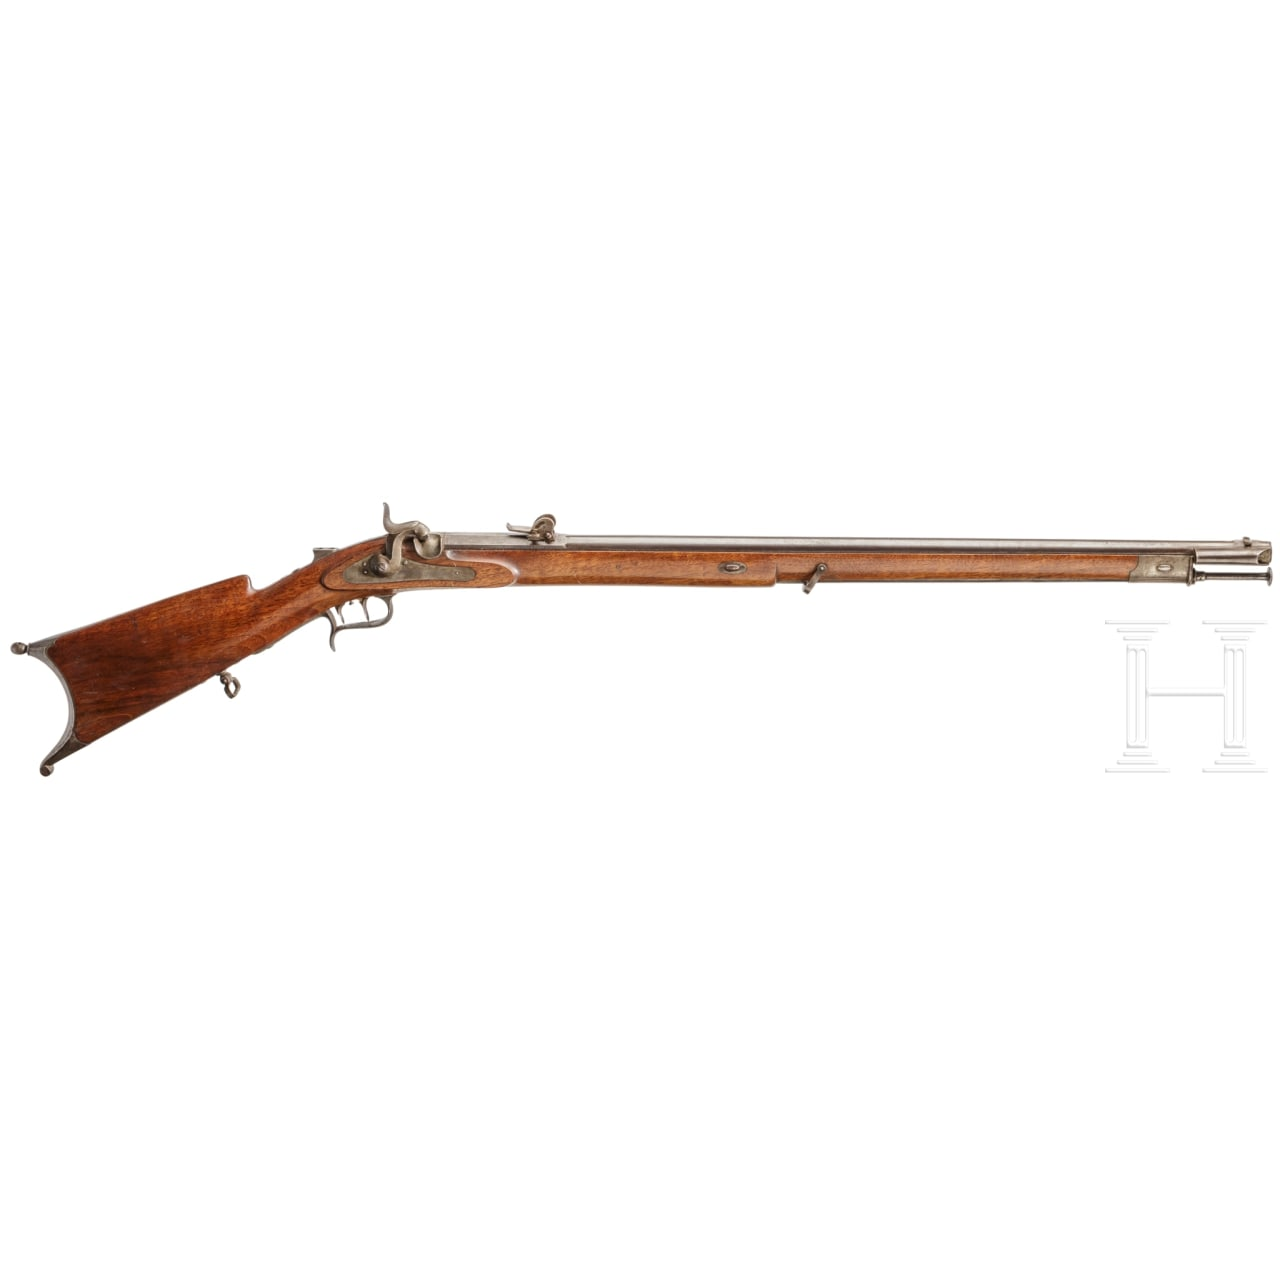 A Swiss M 1851 sniper rifle